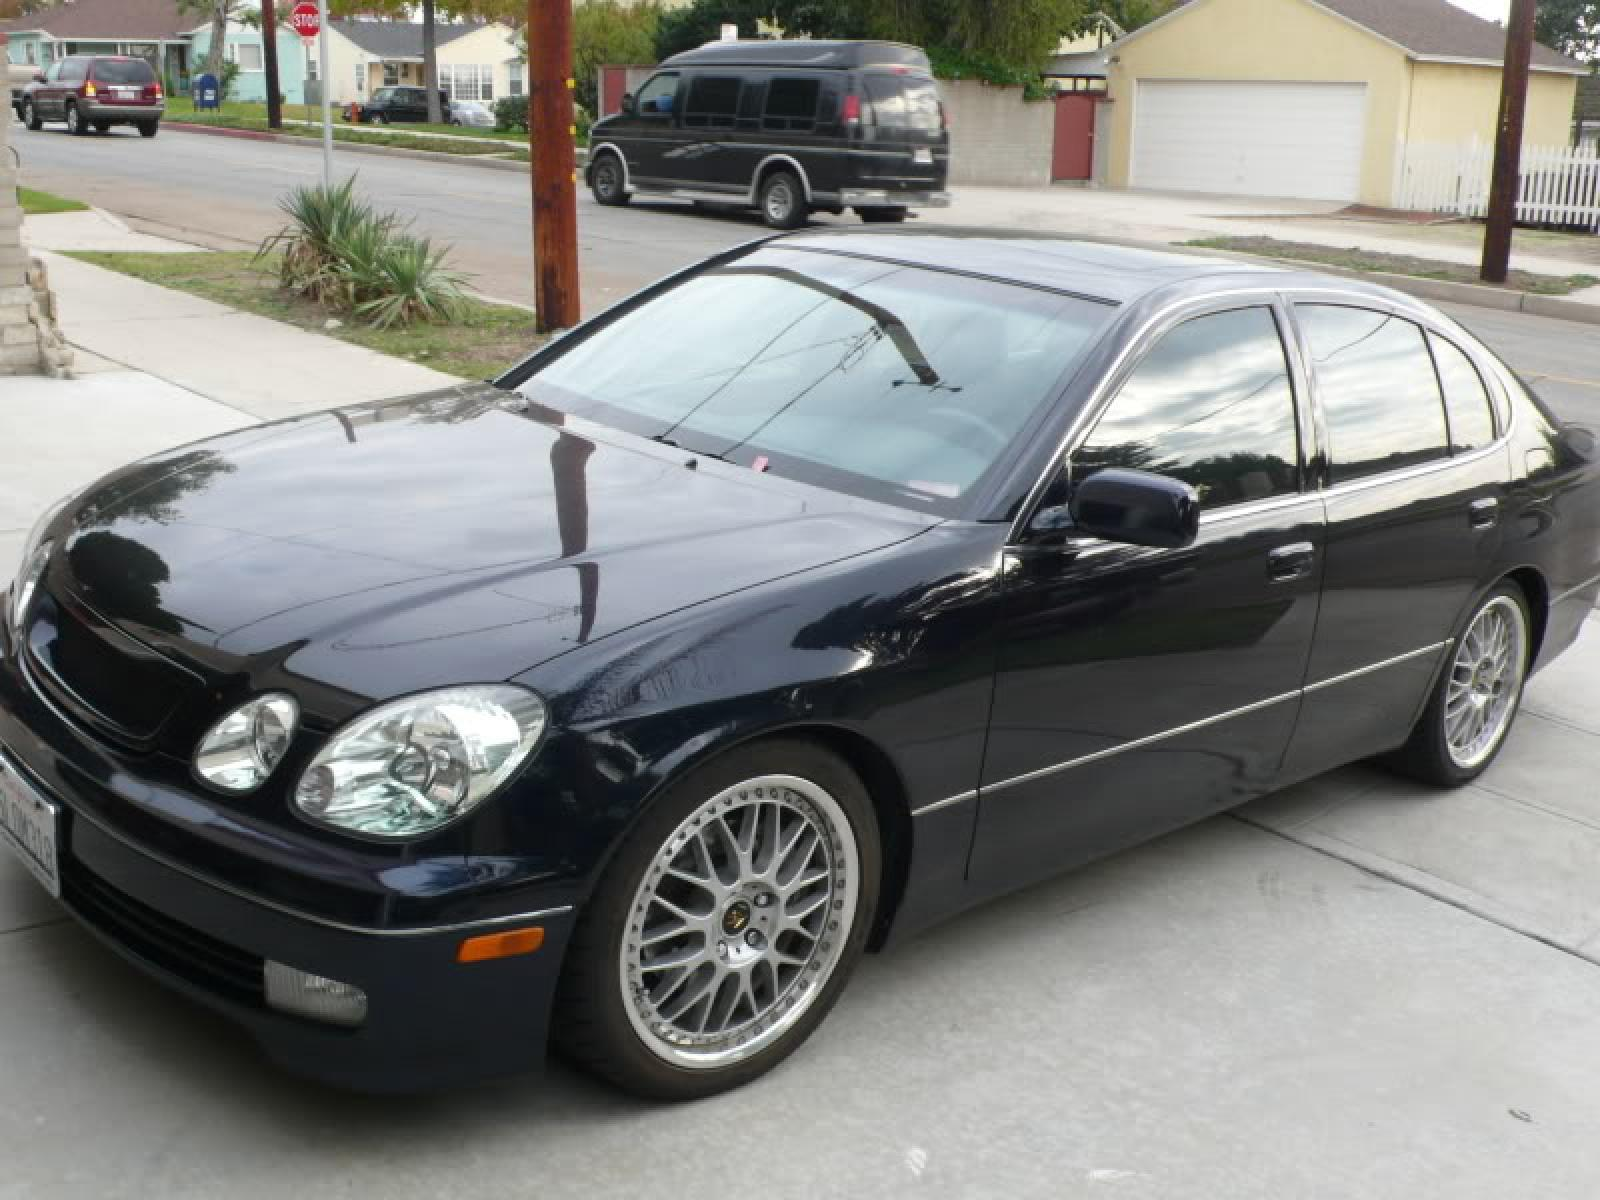 2003 Lexus GS 300 Information and photos ZombieDrive